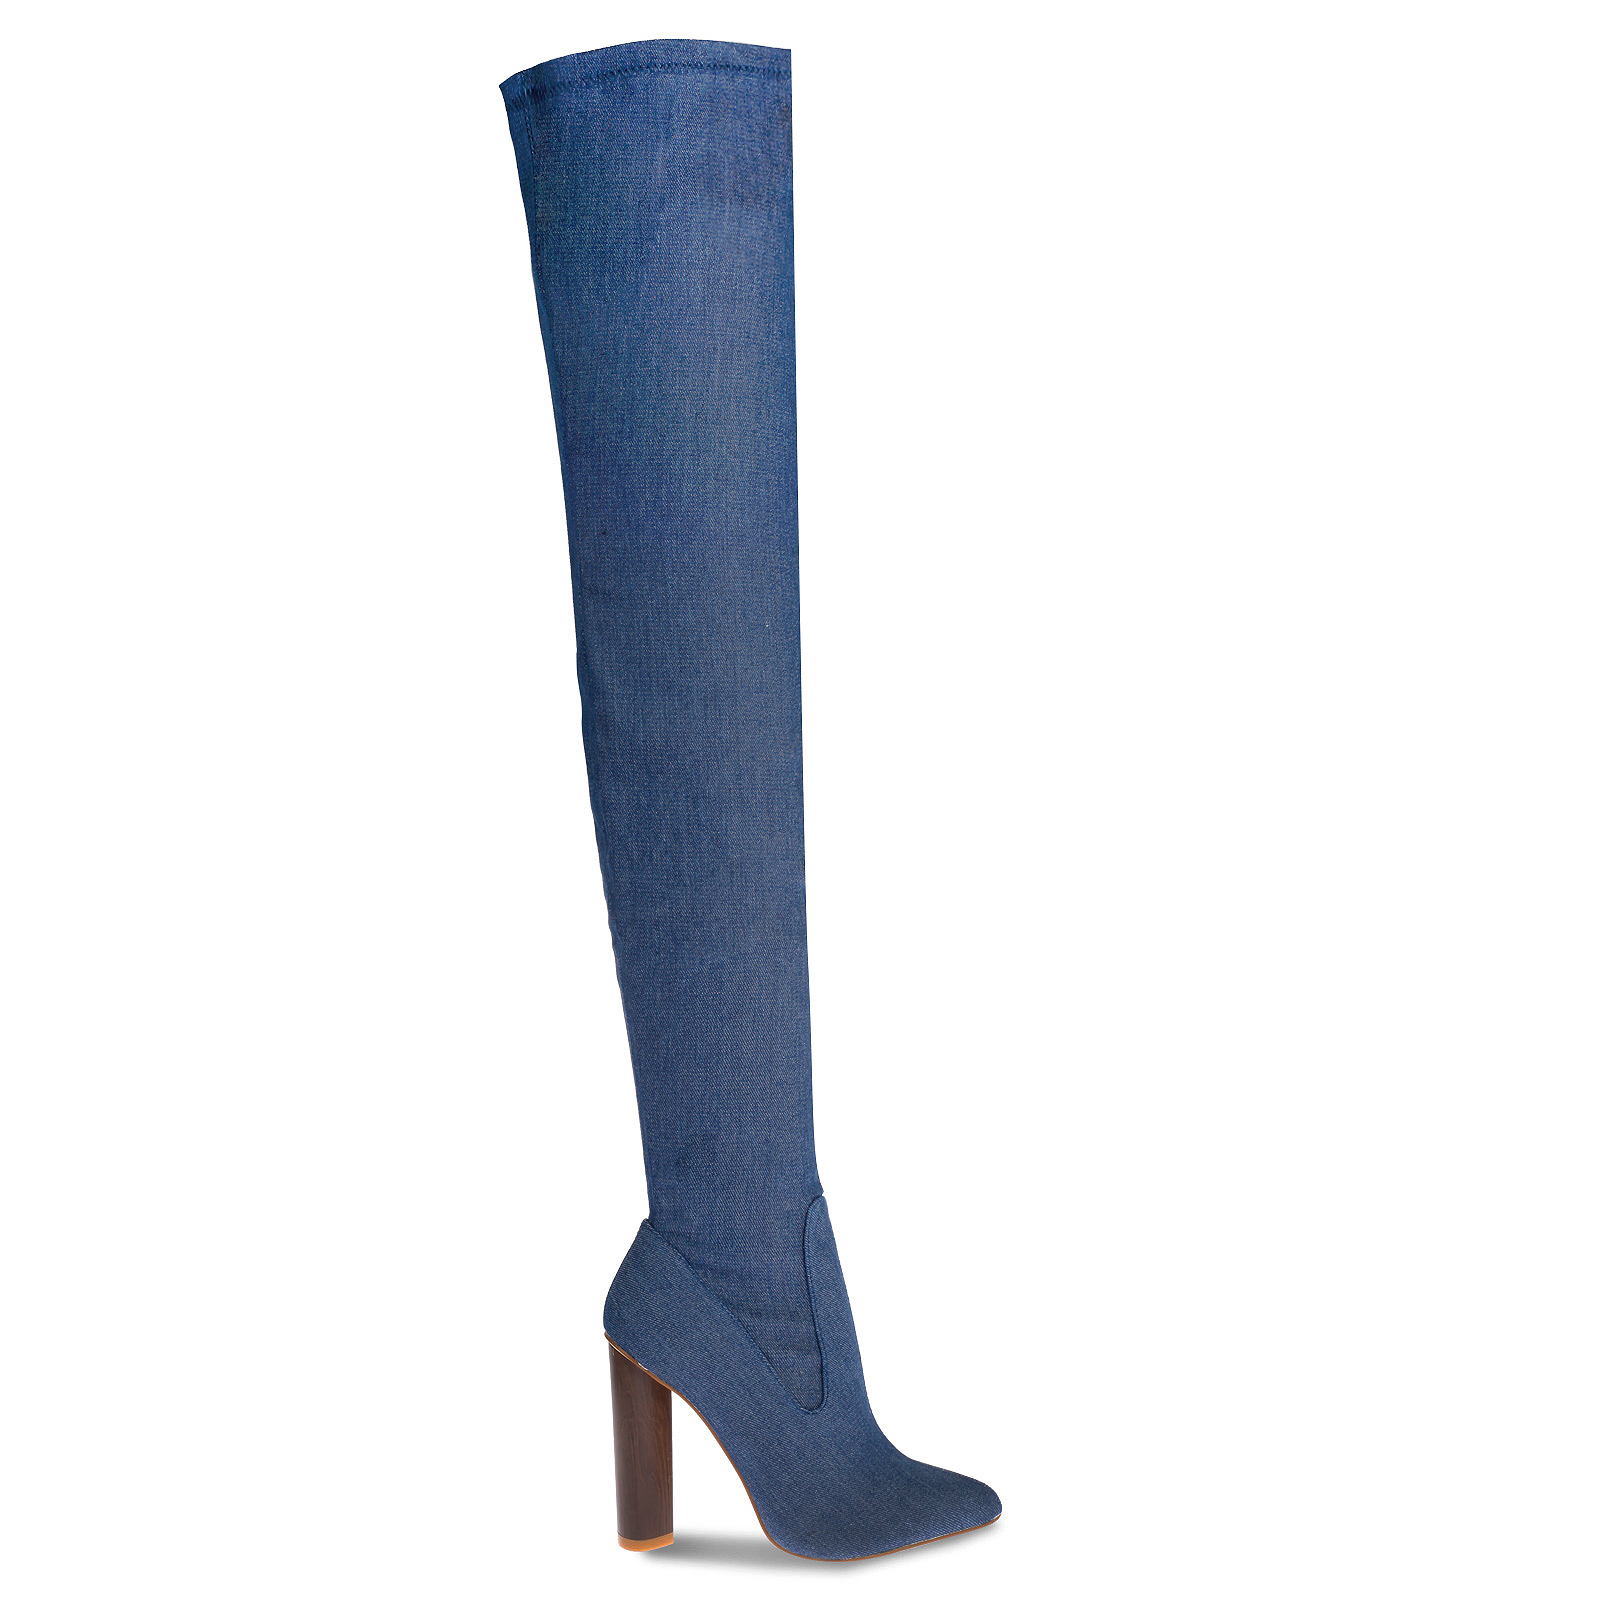 Lily Blue Denim Long Boots